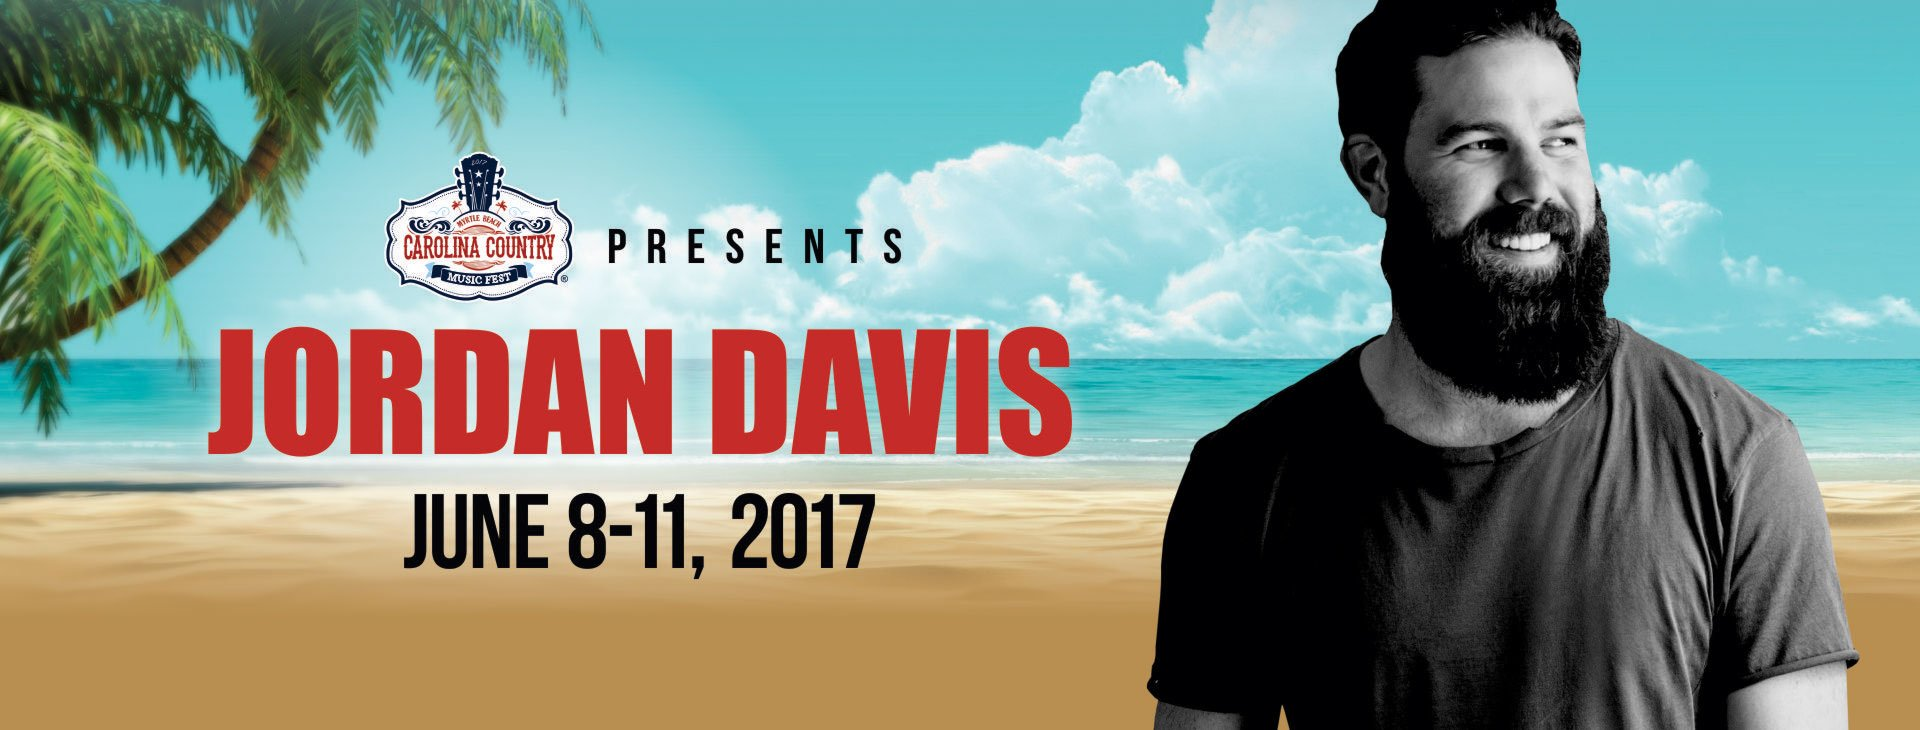 Jordan Davis joins Carolina Country Music Fest!